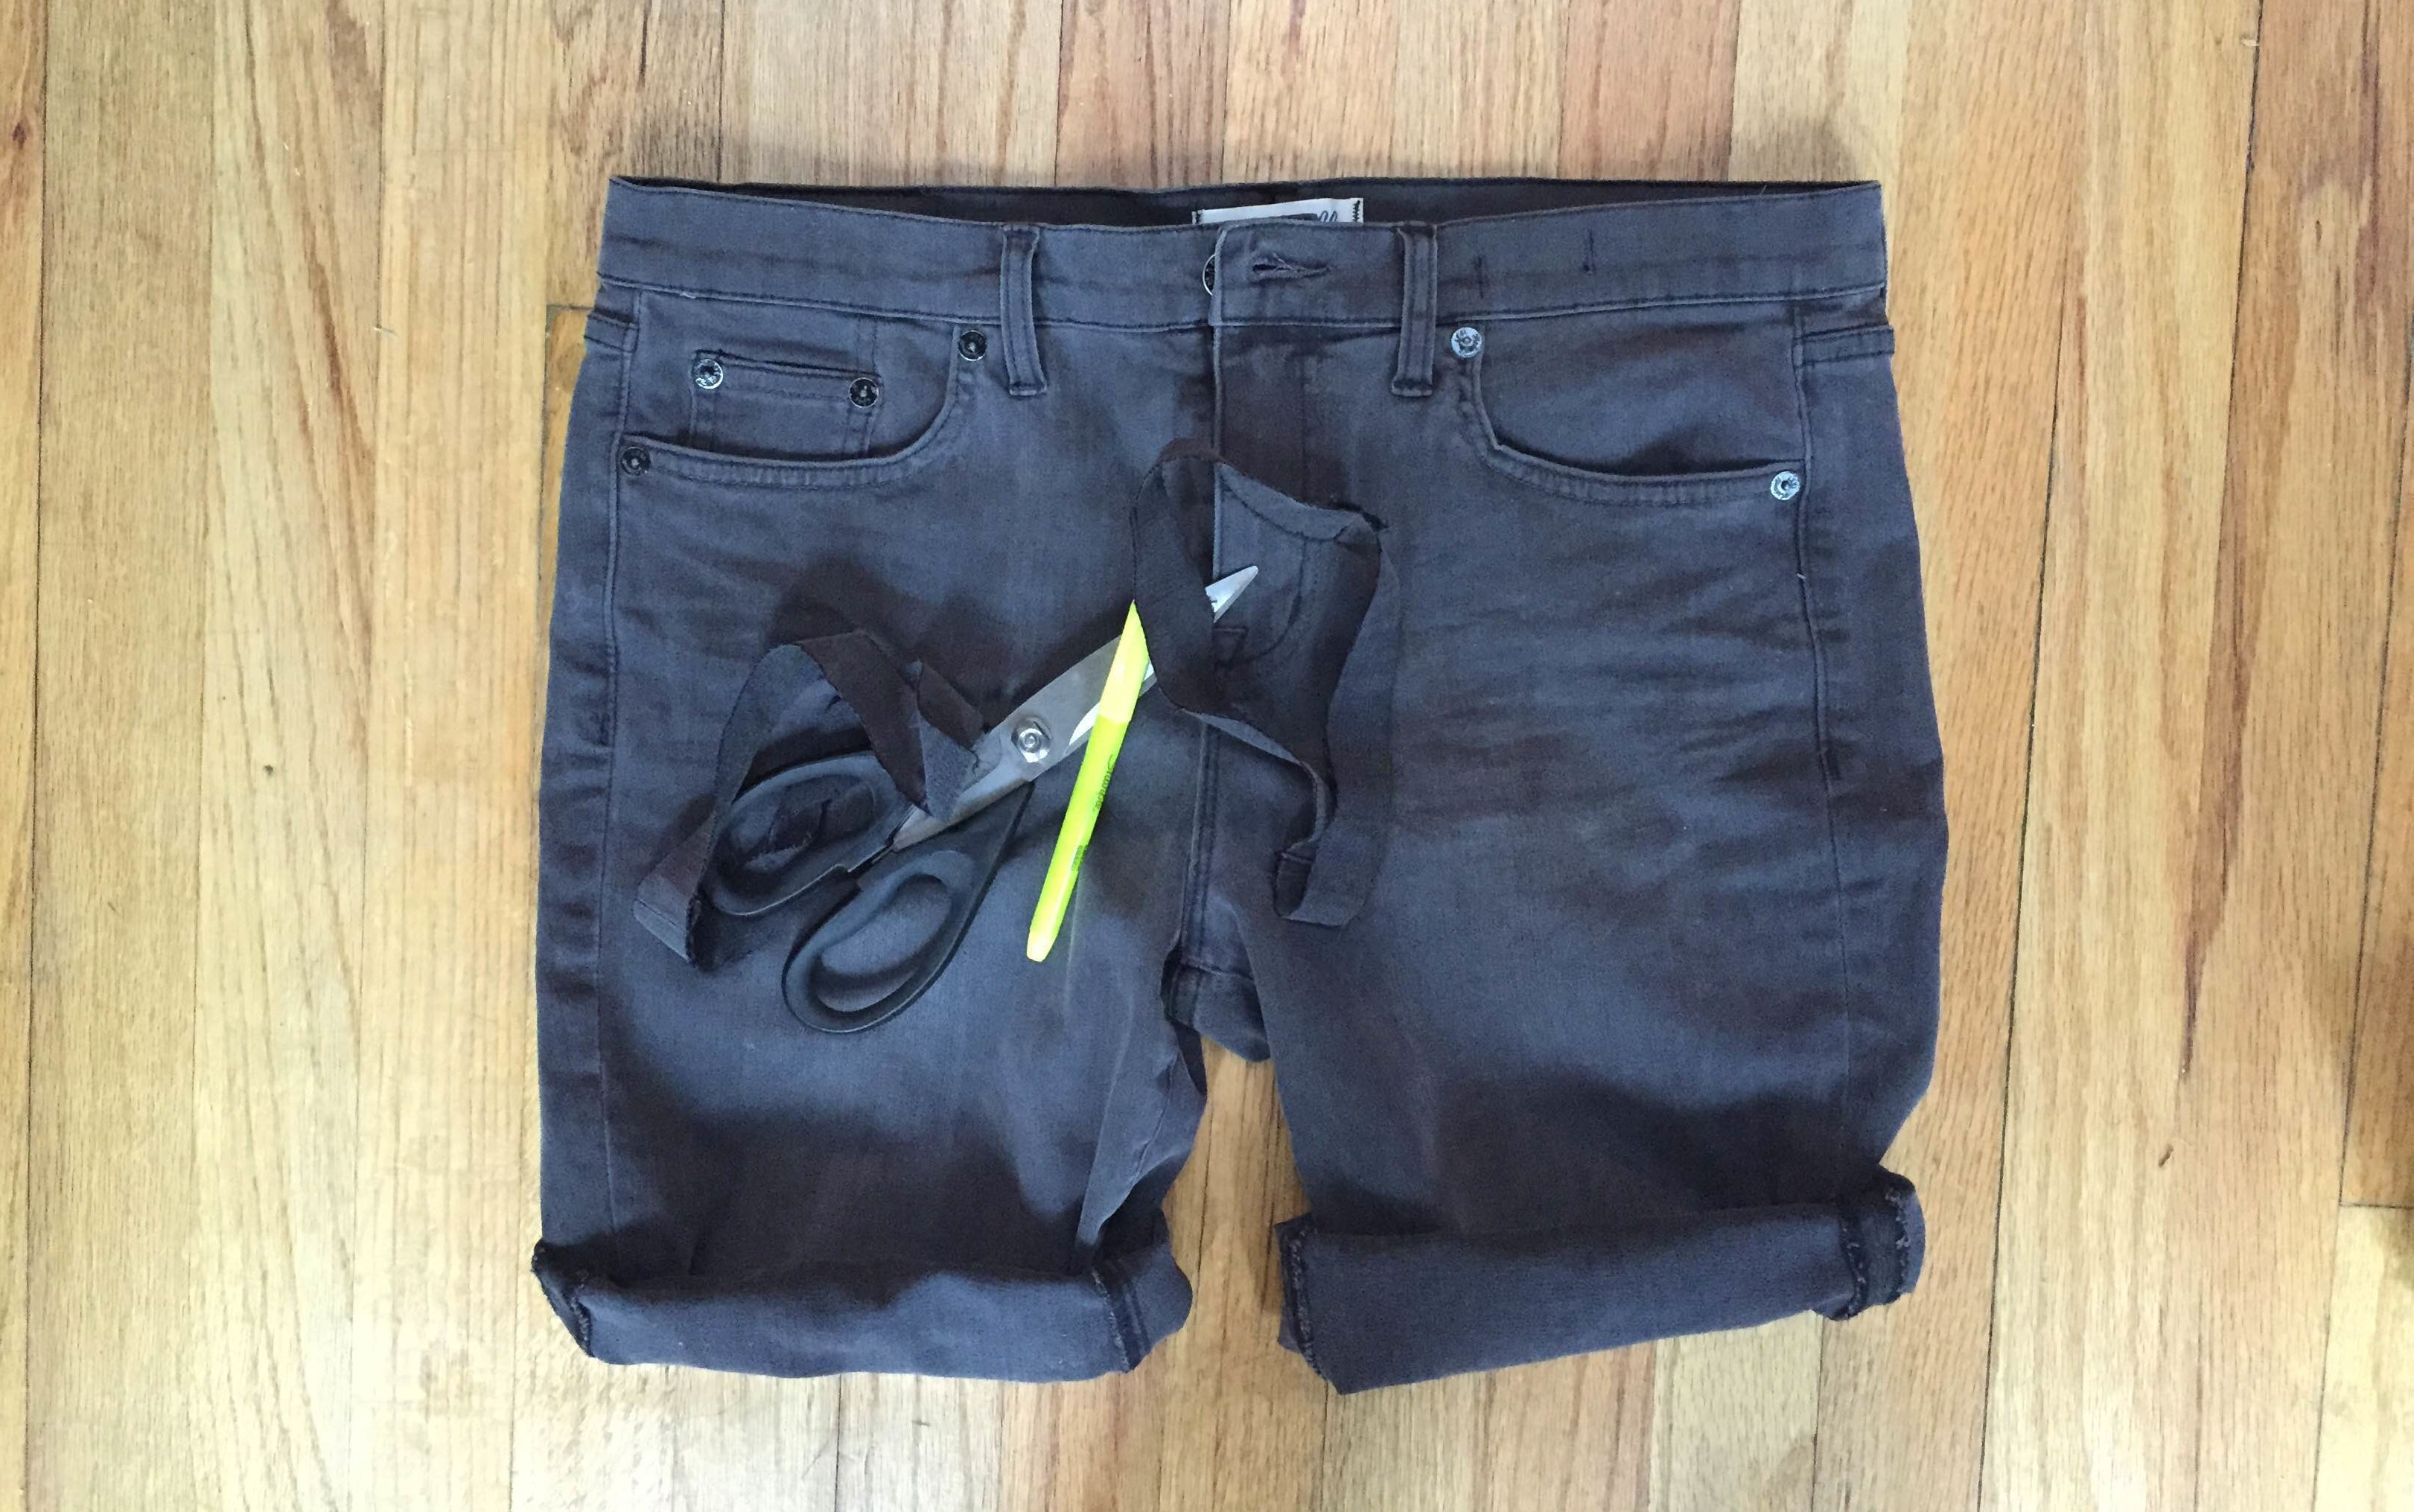 How To Make Jeans Into Shorts In 5 Simple Steps Because Legs Need ...